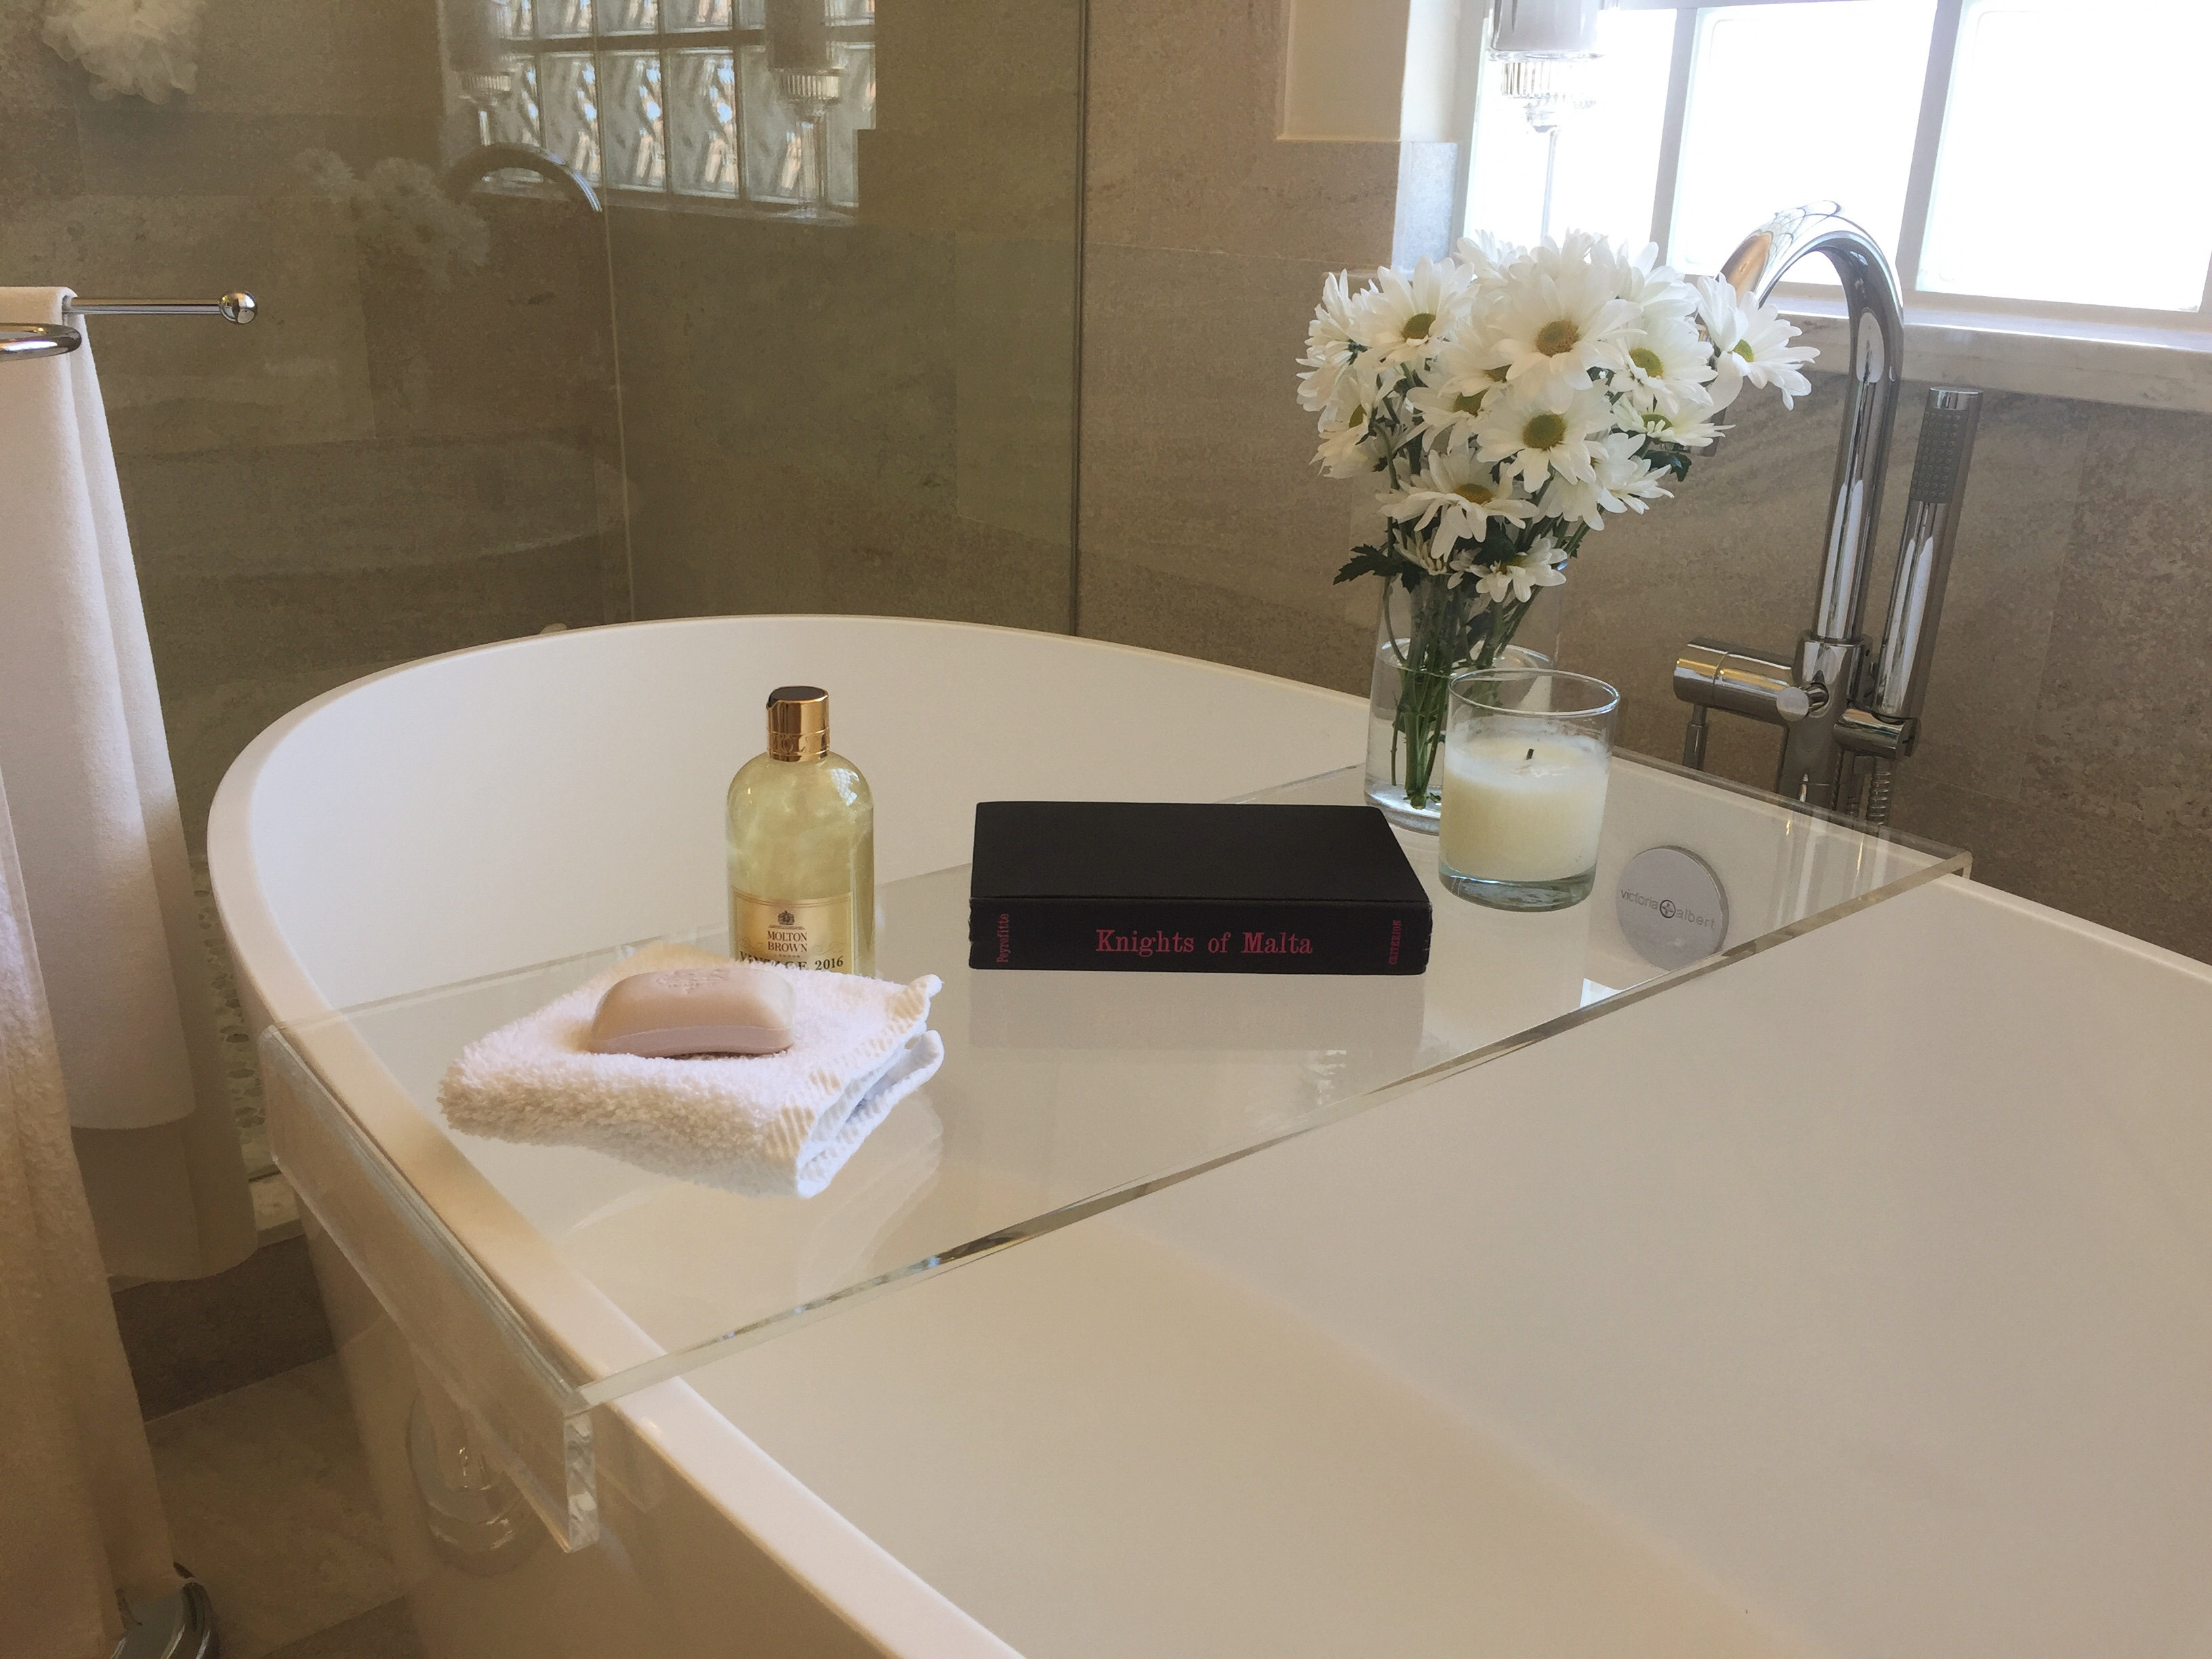 Acrylic Bathtub Caddy | United Products, LLC